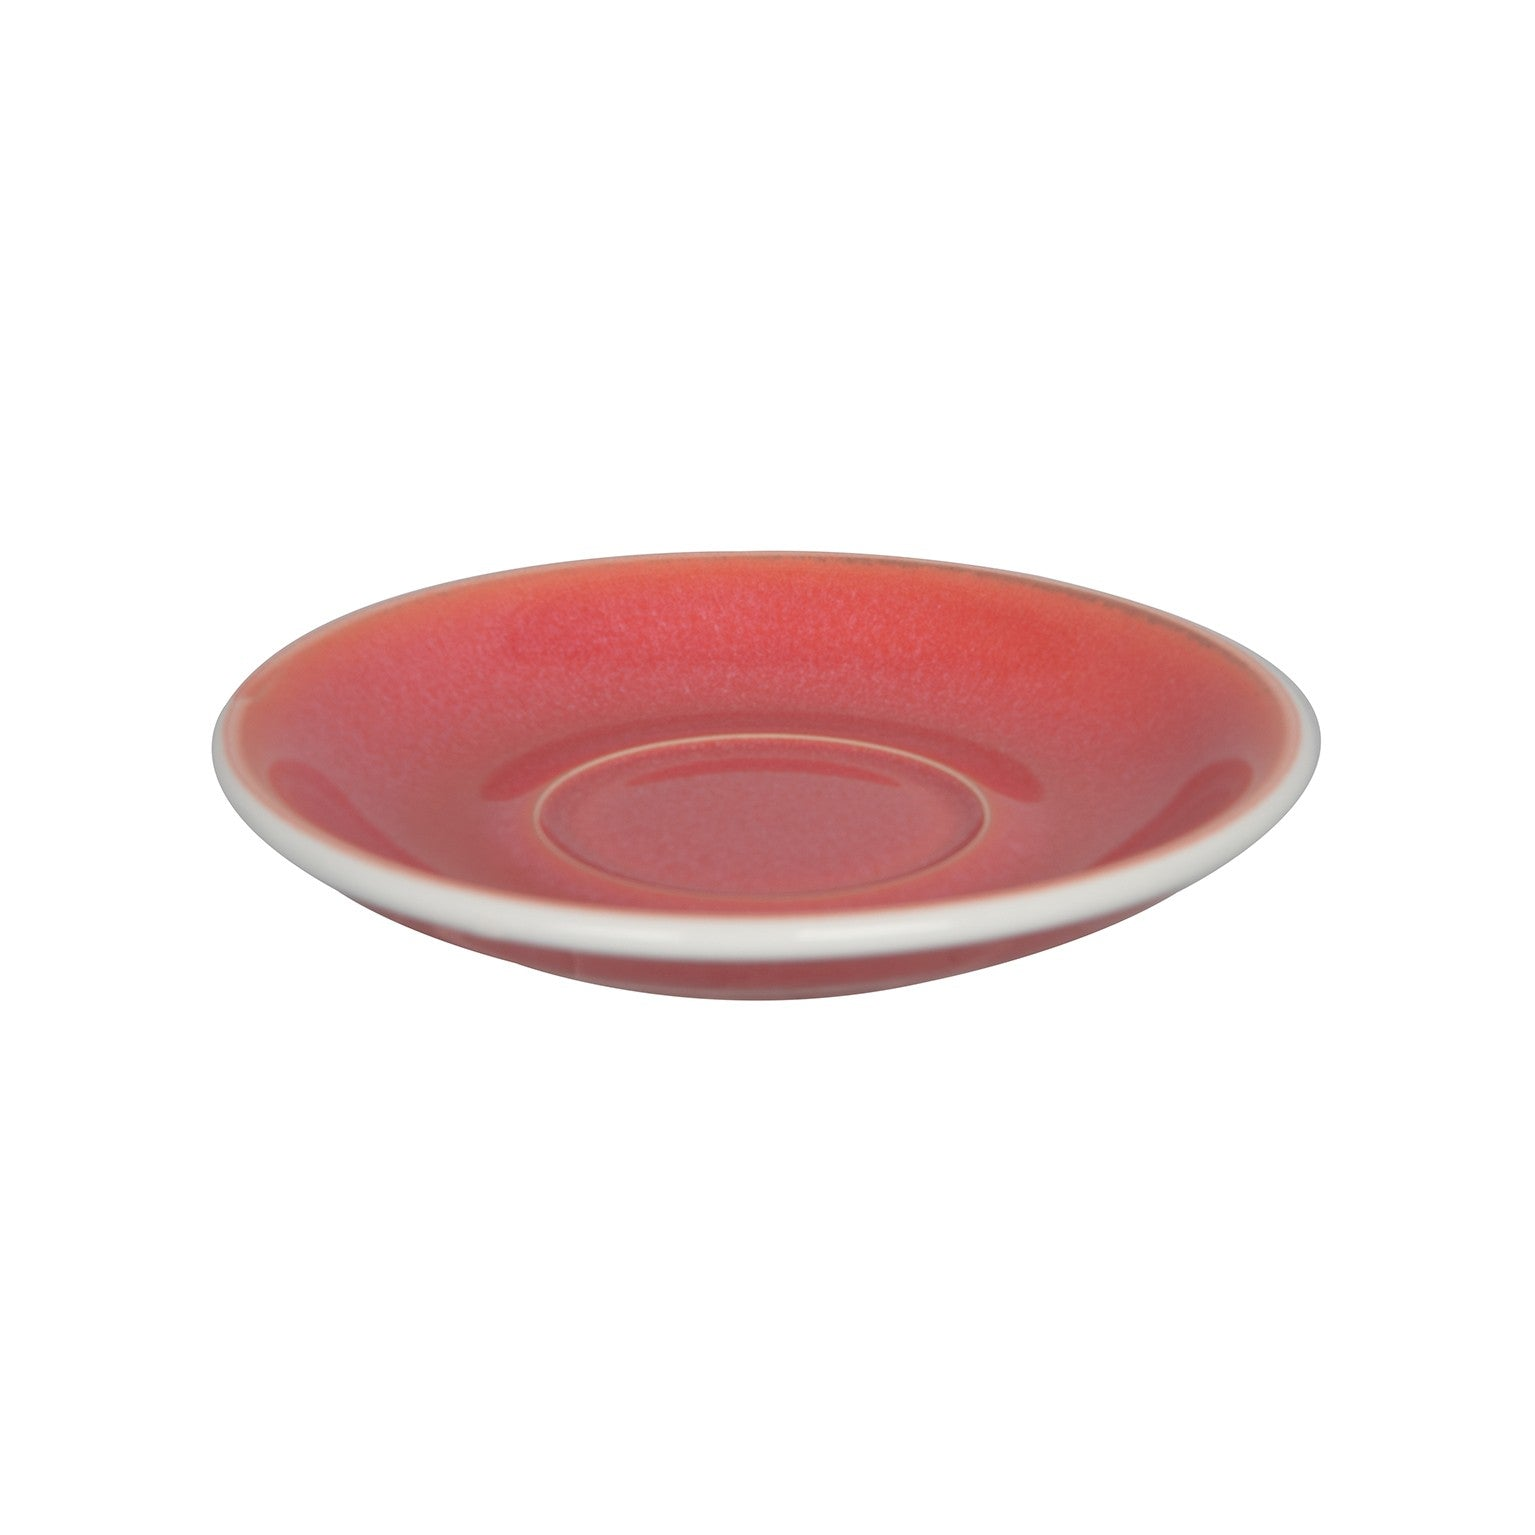 Loveramics Reactive Glaze Potters Flat White / Cappuccino Saucer (Berry) 14.5cm